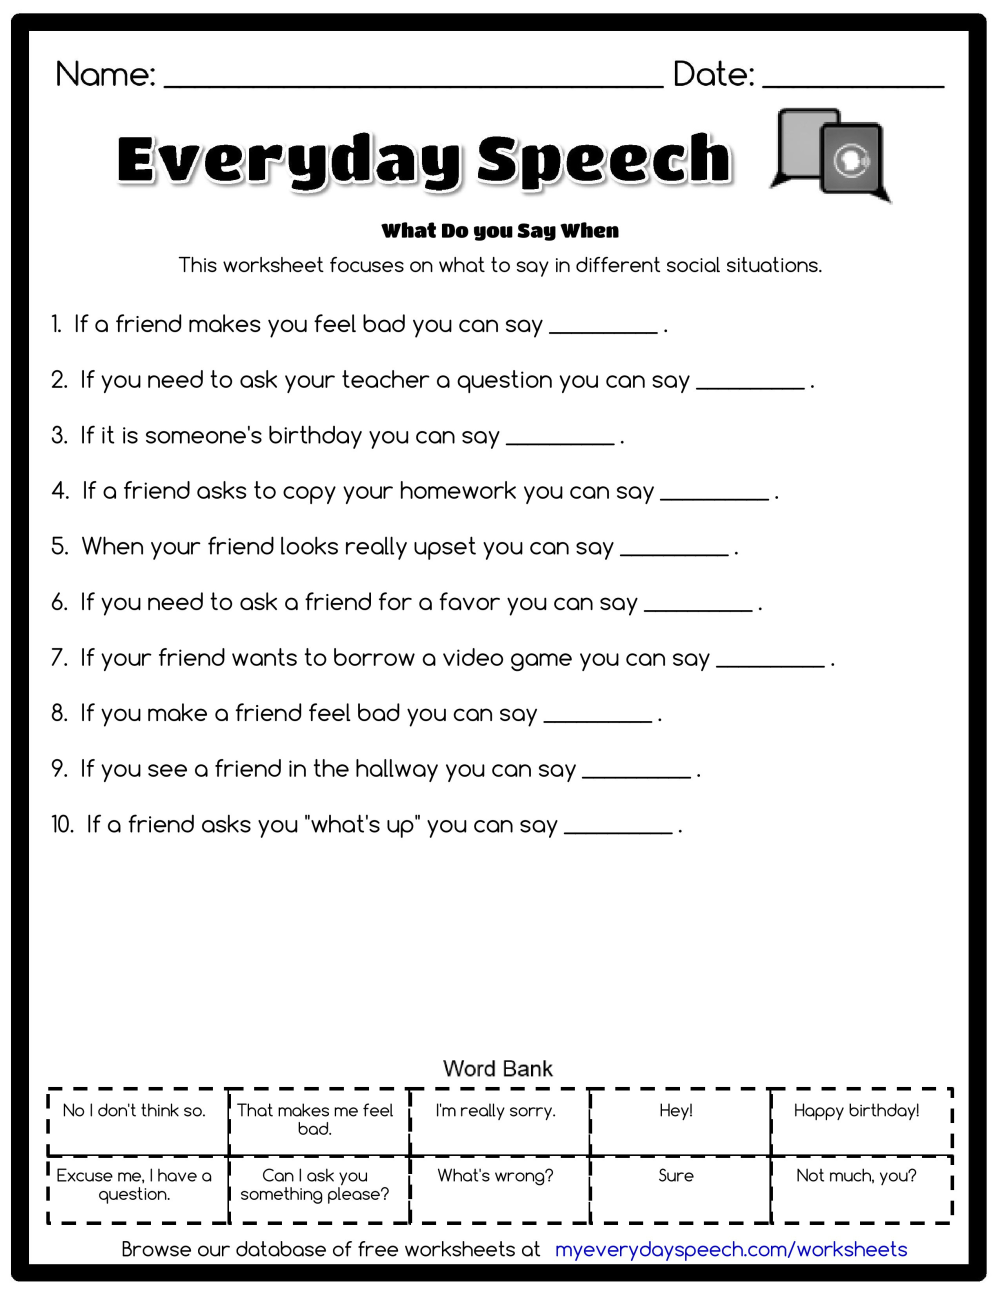 medium resolution of Multiple Meaning Words Worksheets 6th Grade   Printable Worksheets and  Activities for Teachers